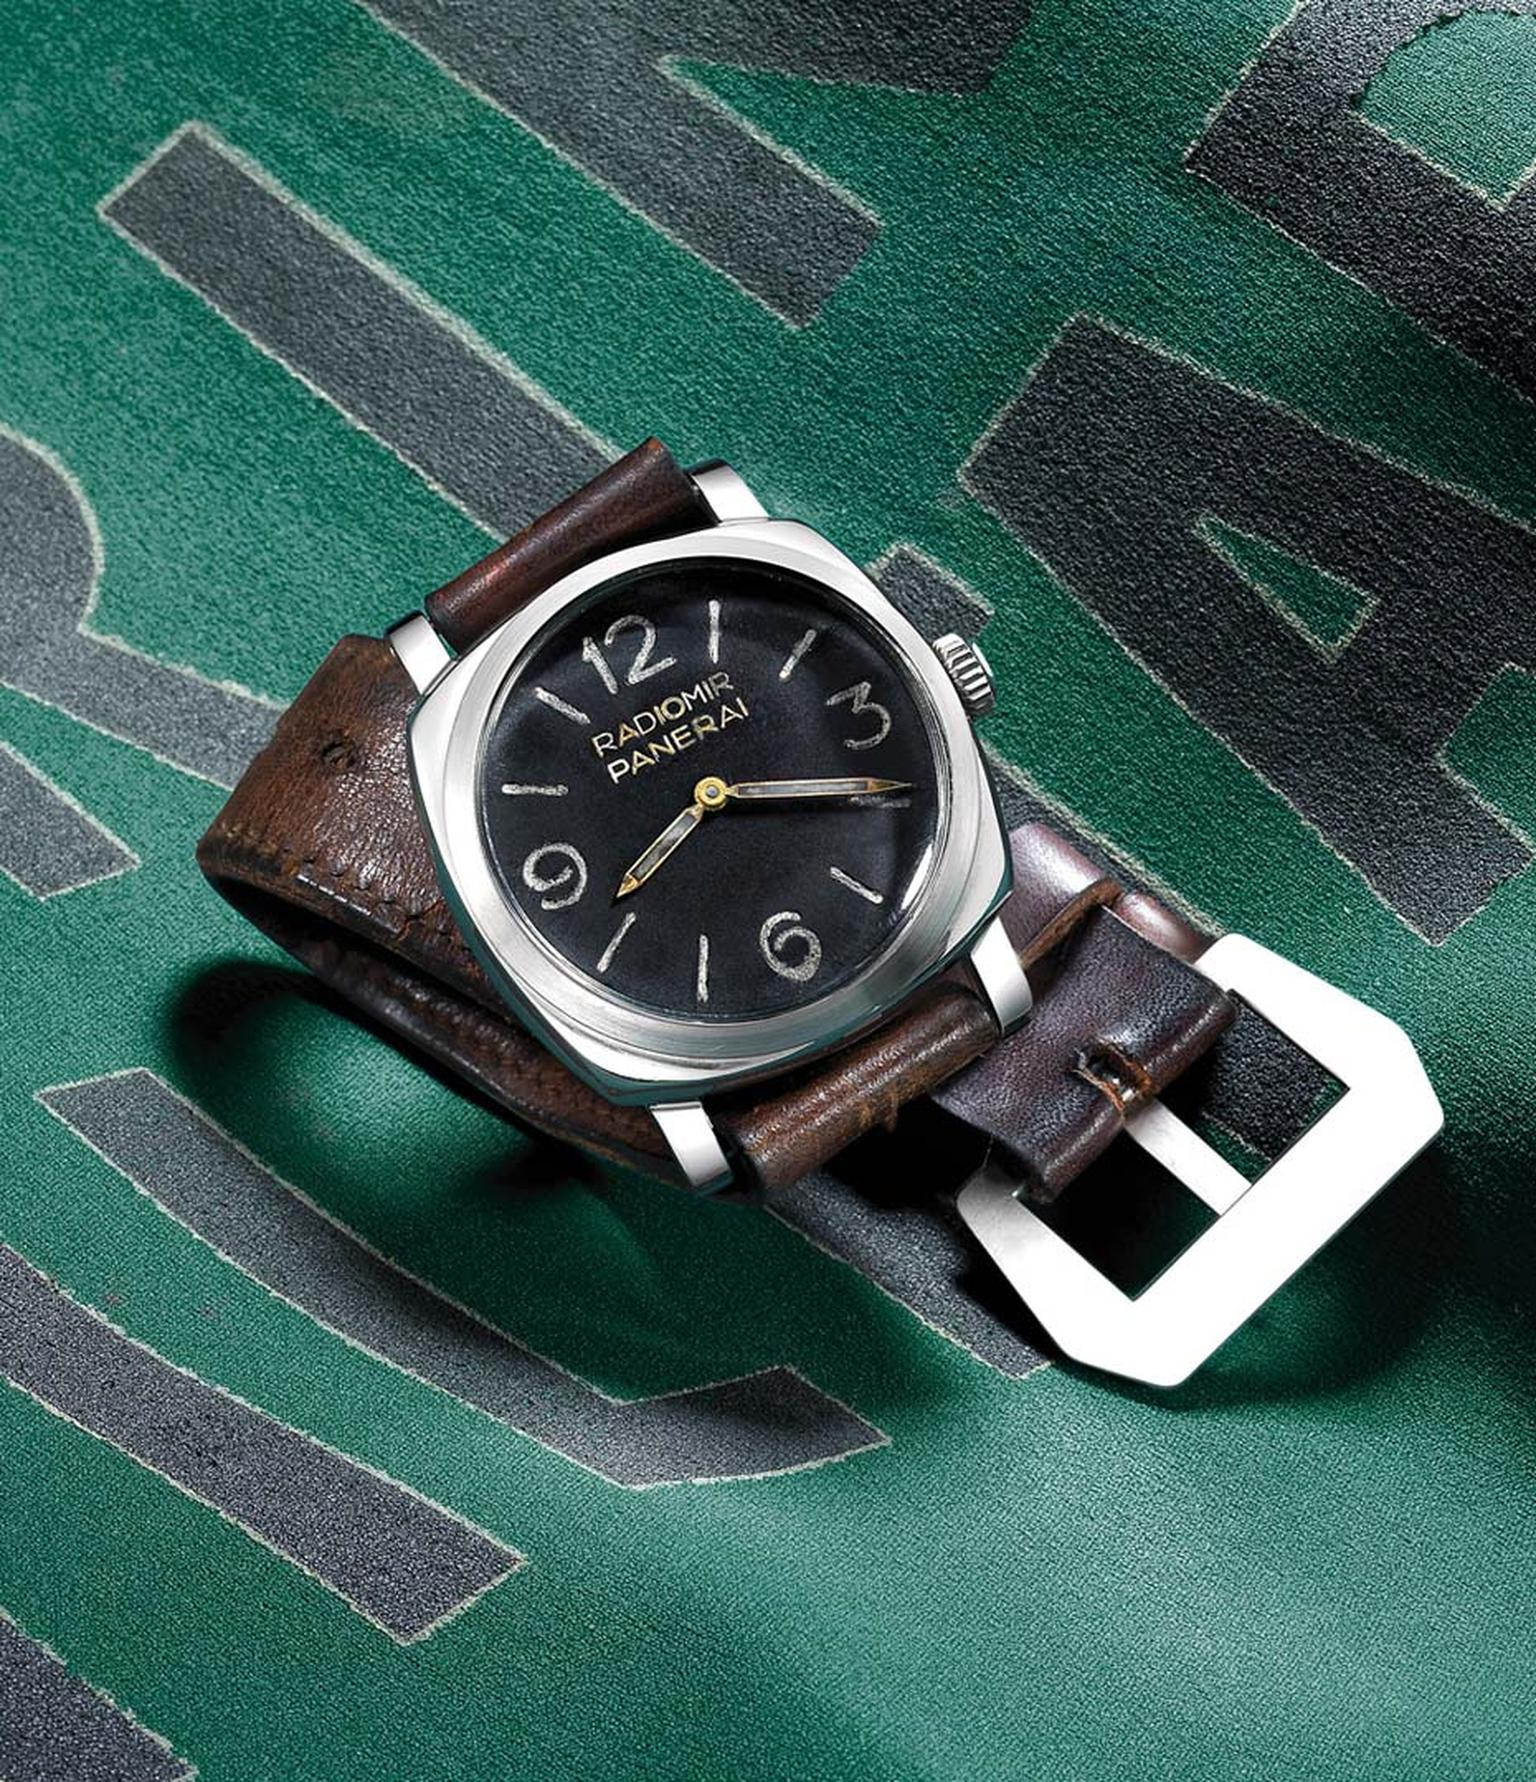 The Panerai Radiomir watch was inspired by more recent timepieces which will also be on display at Harrods, including the 1993 Mare Nostrum, which inspired the special limited edition Radiomir Chronographs launched by Panerai earlier this year.